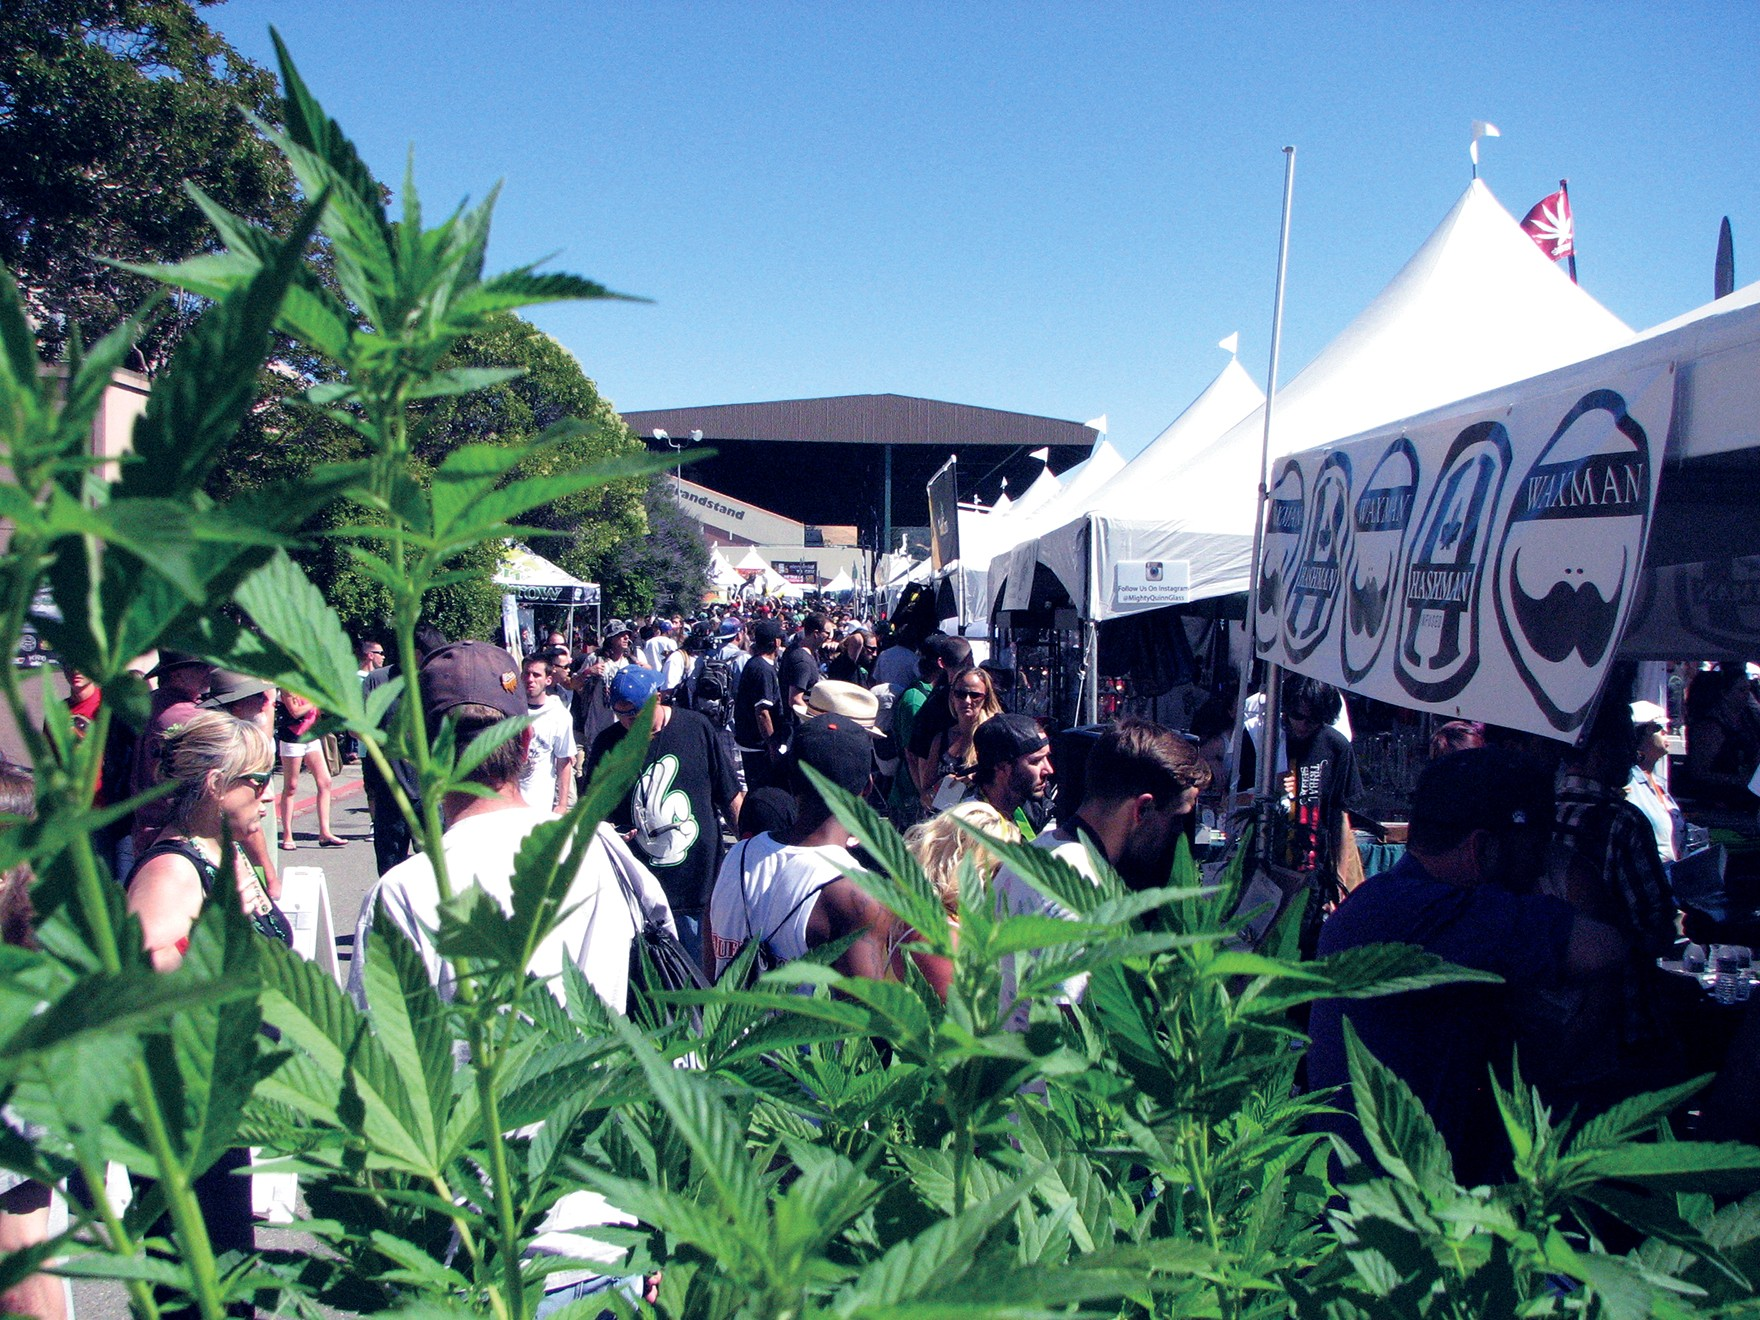 How to Have an Epic Cannabis Summer | Summer Guide | Oakland